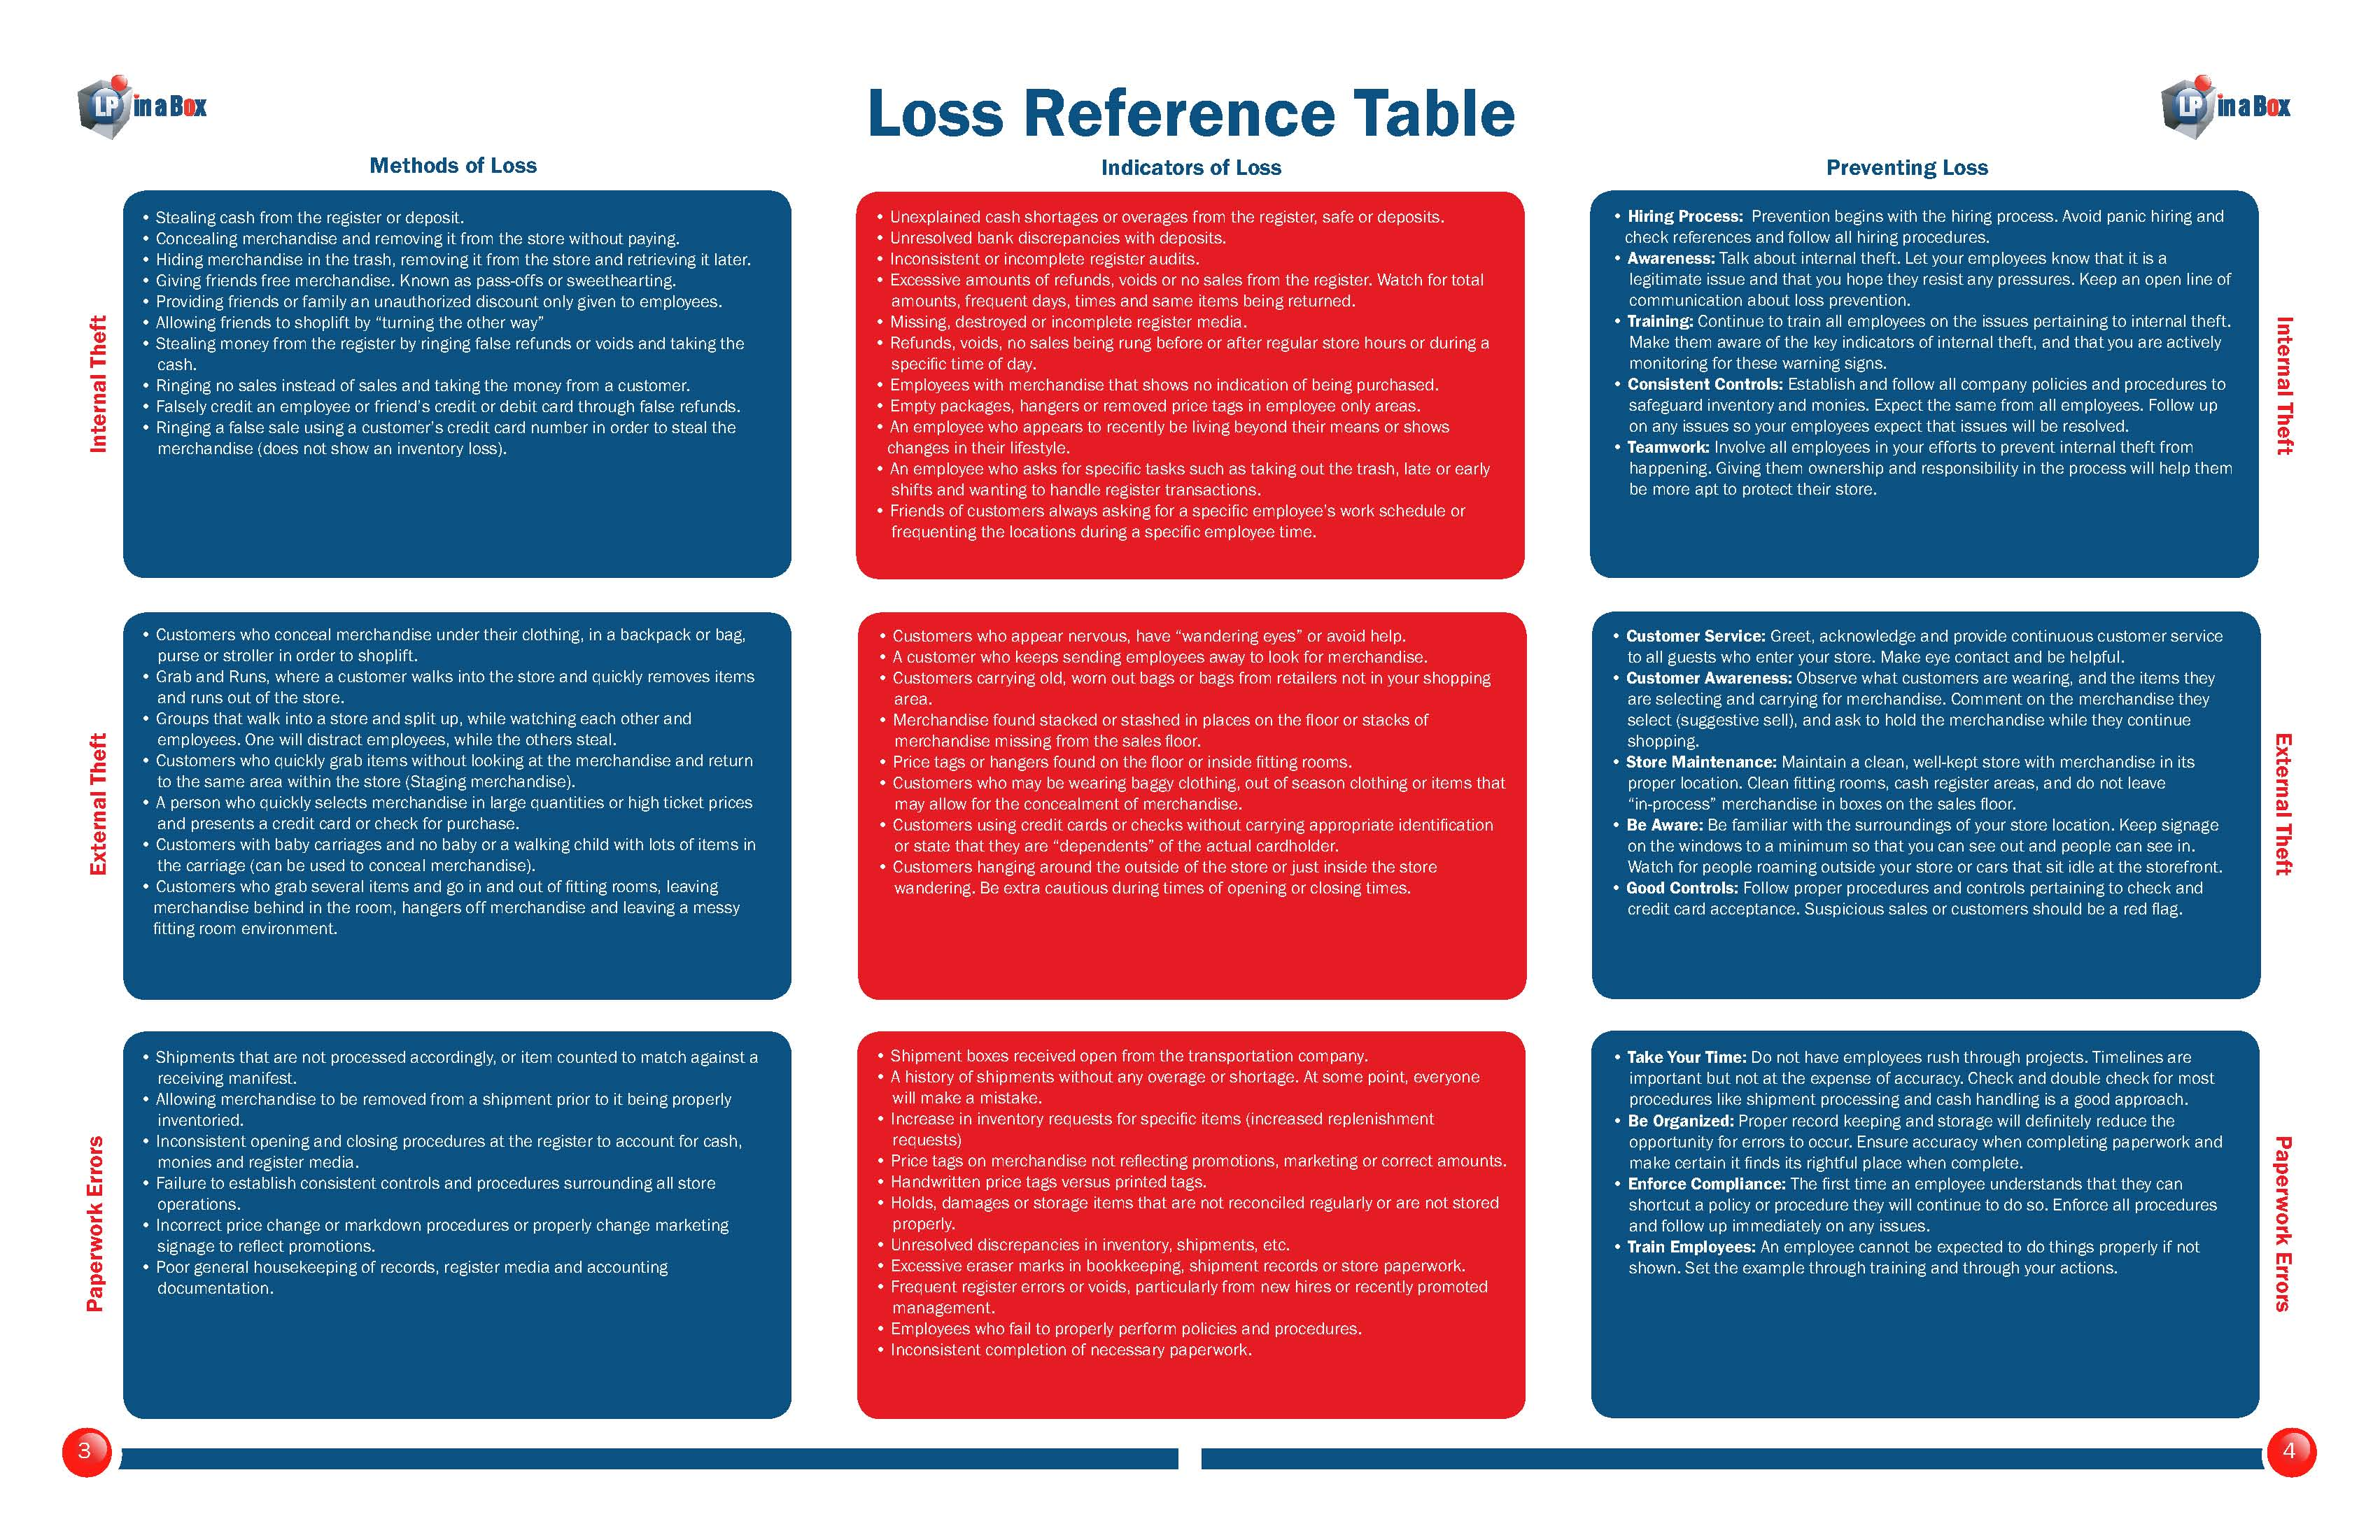 Loss Prevention Reference Table